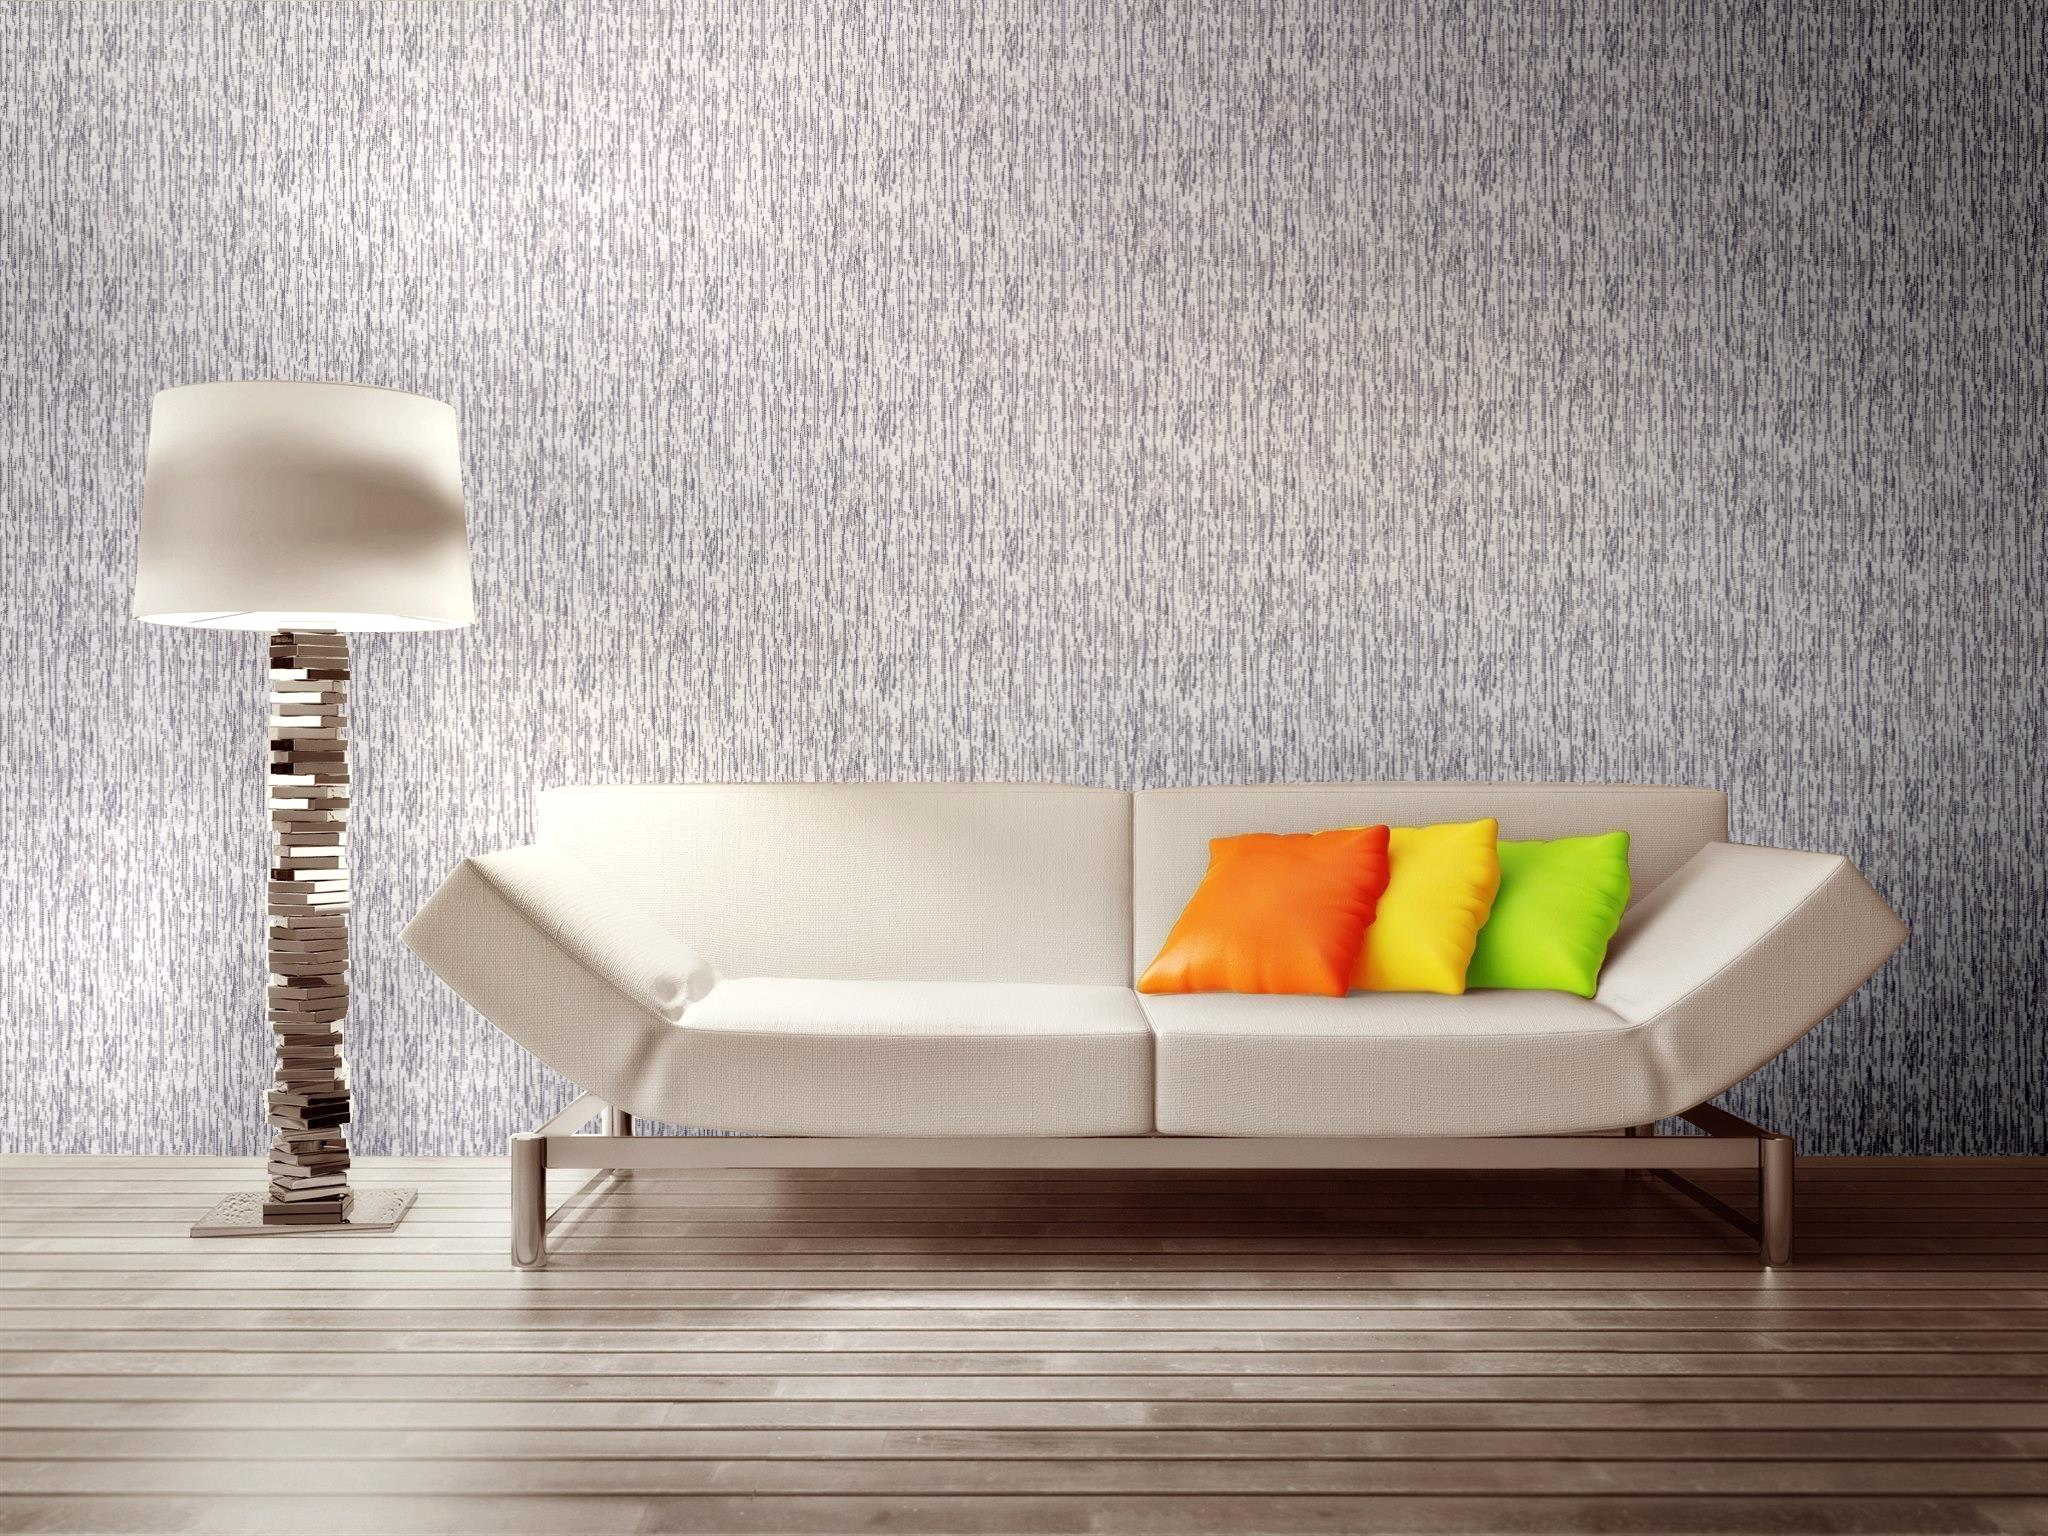 Amazon.com: Blooming Wall: PEEL AND STICK WALLPAPER